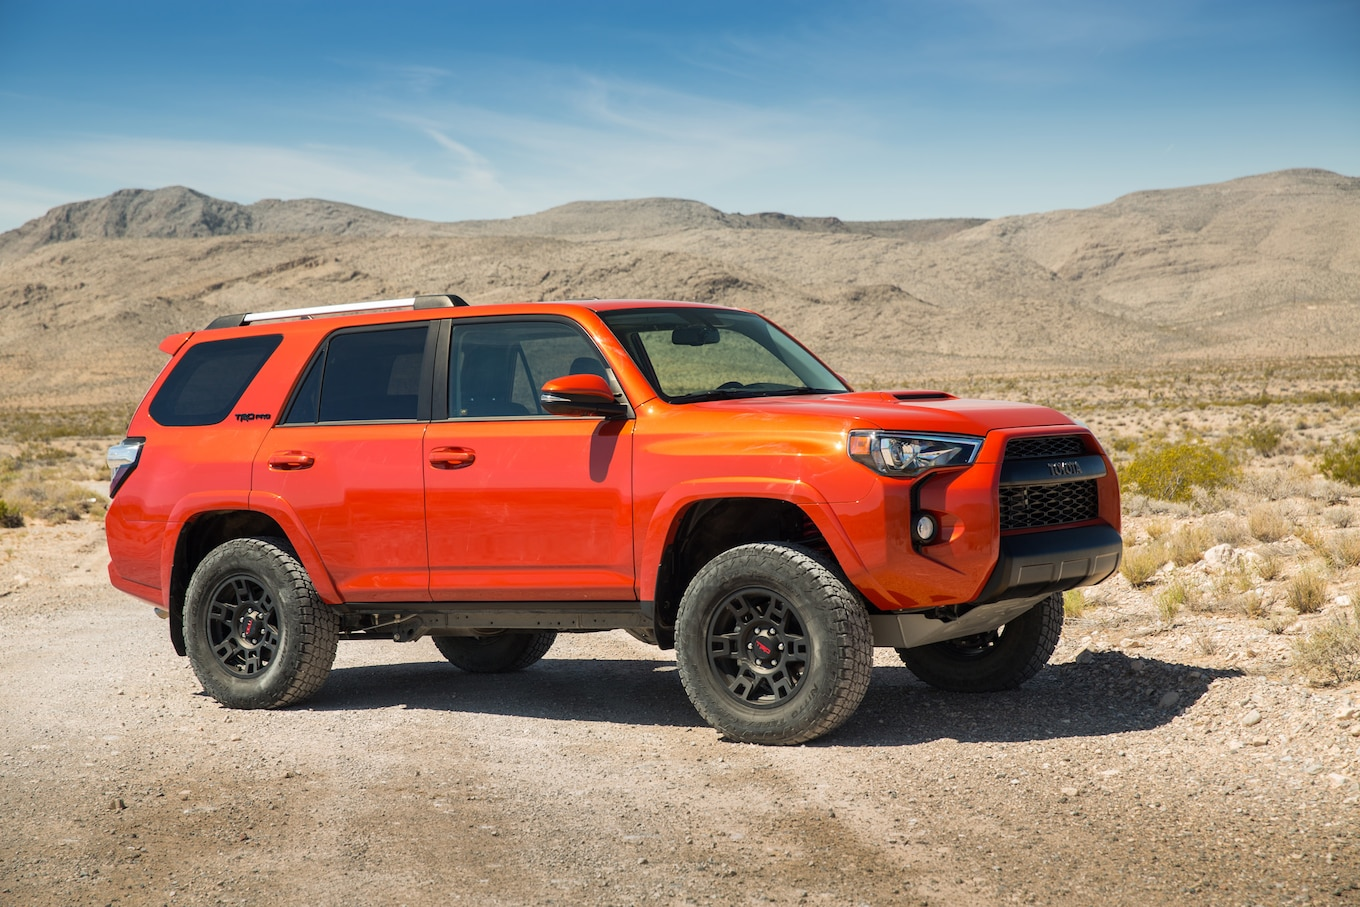 2015 Toyota 4Runner Specifications, Pricing, Photos - Motor Trend